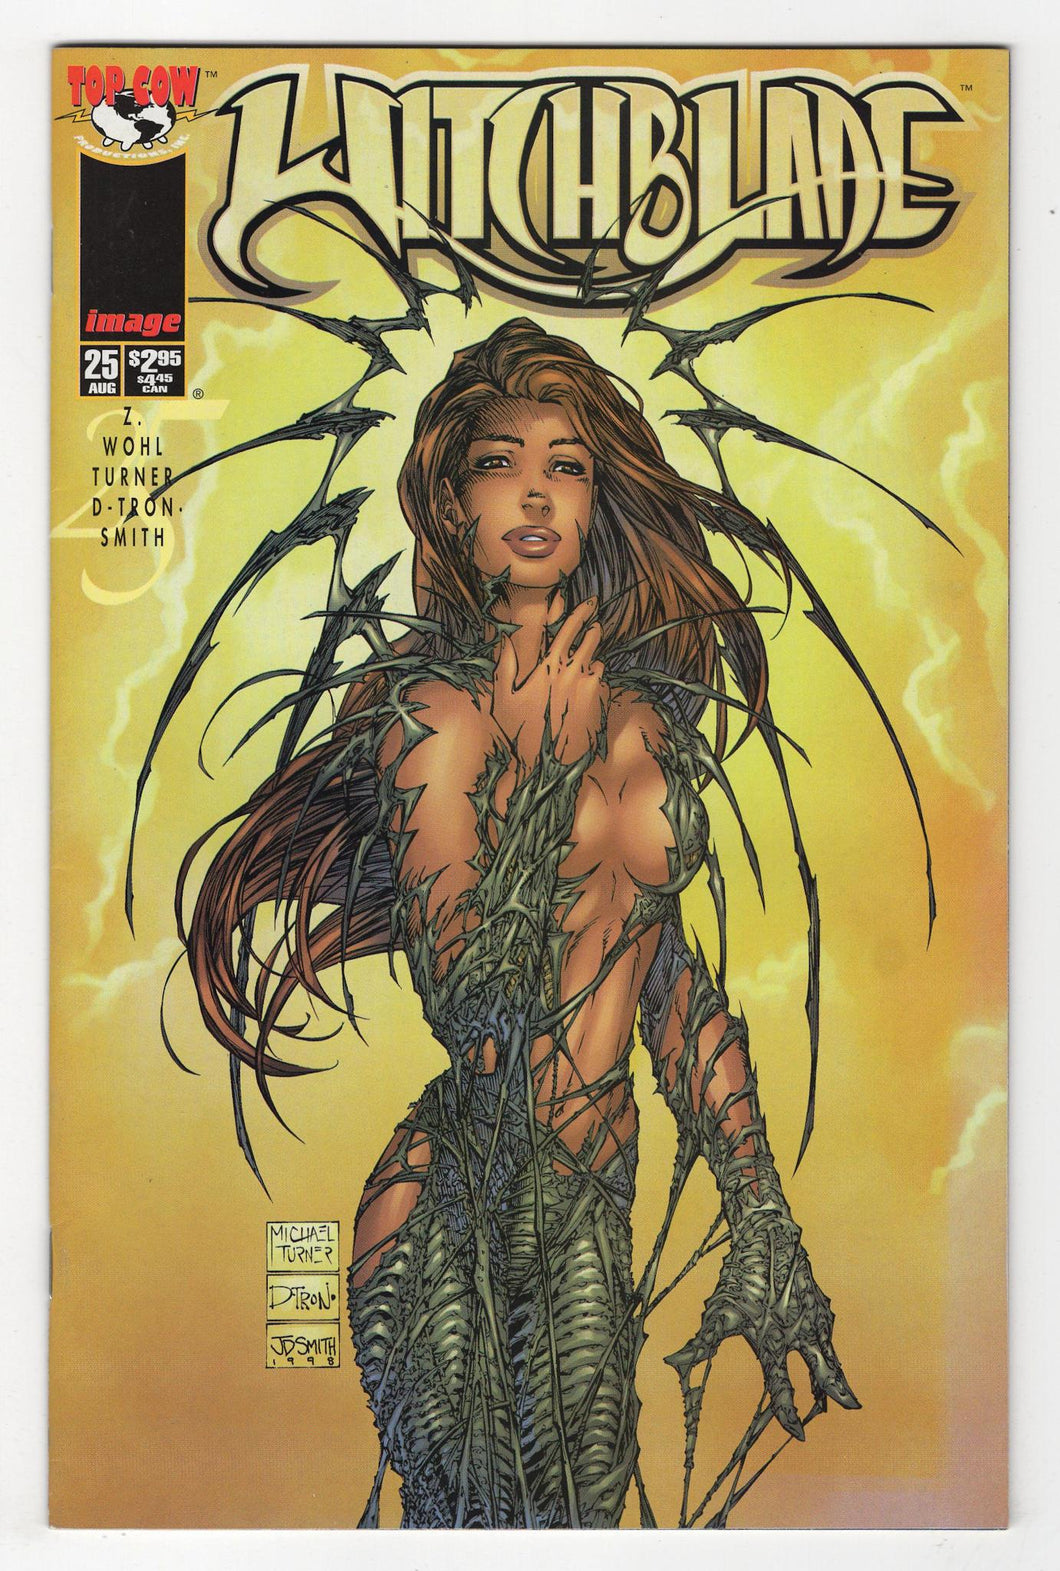 Witchblade #25 Cover Front